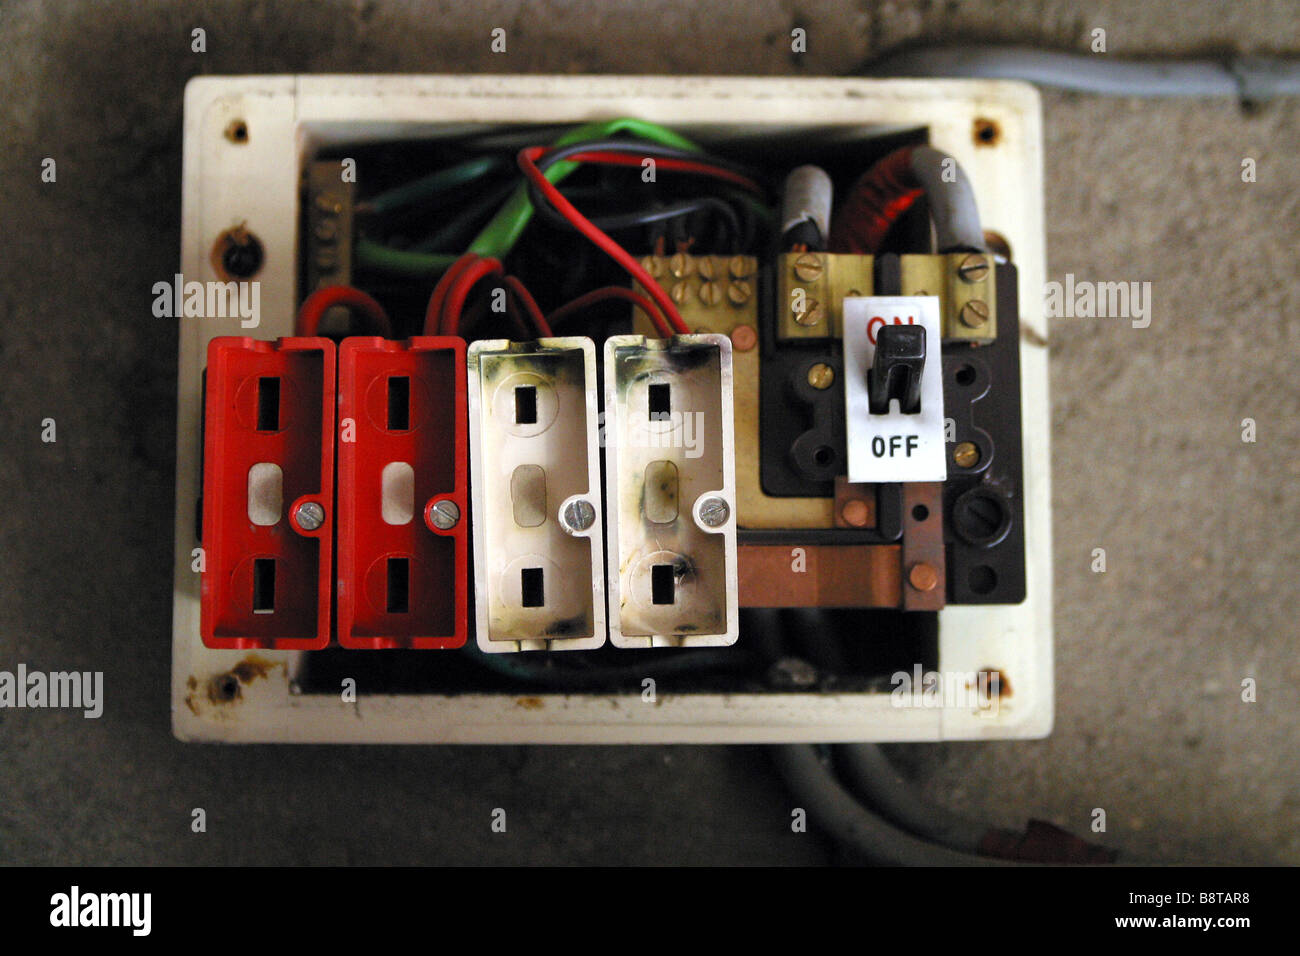 Mercury Mystique Fuse Box Power Distribution Fuse Ampere Rating A